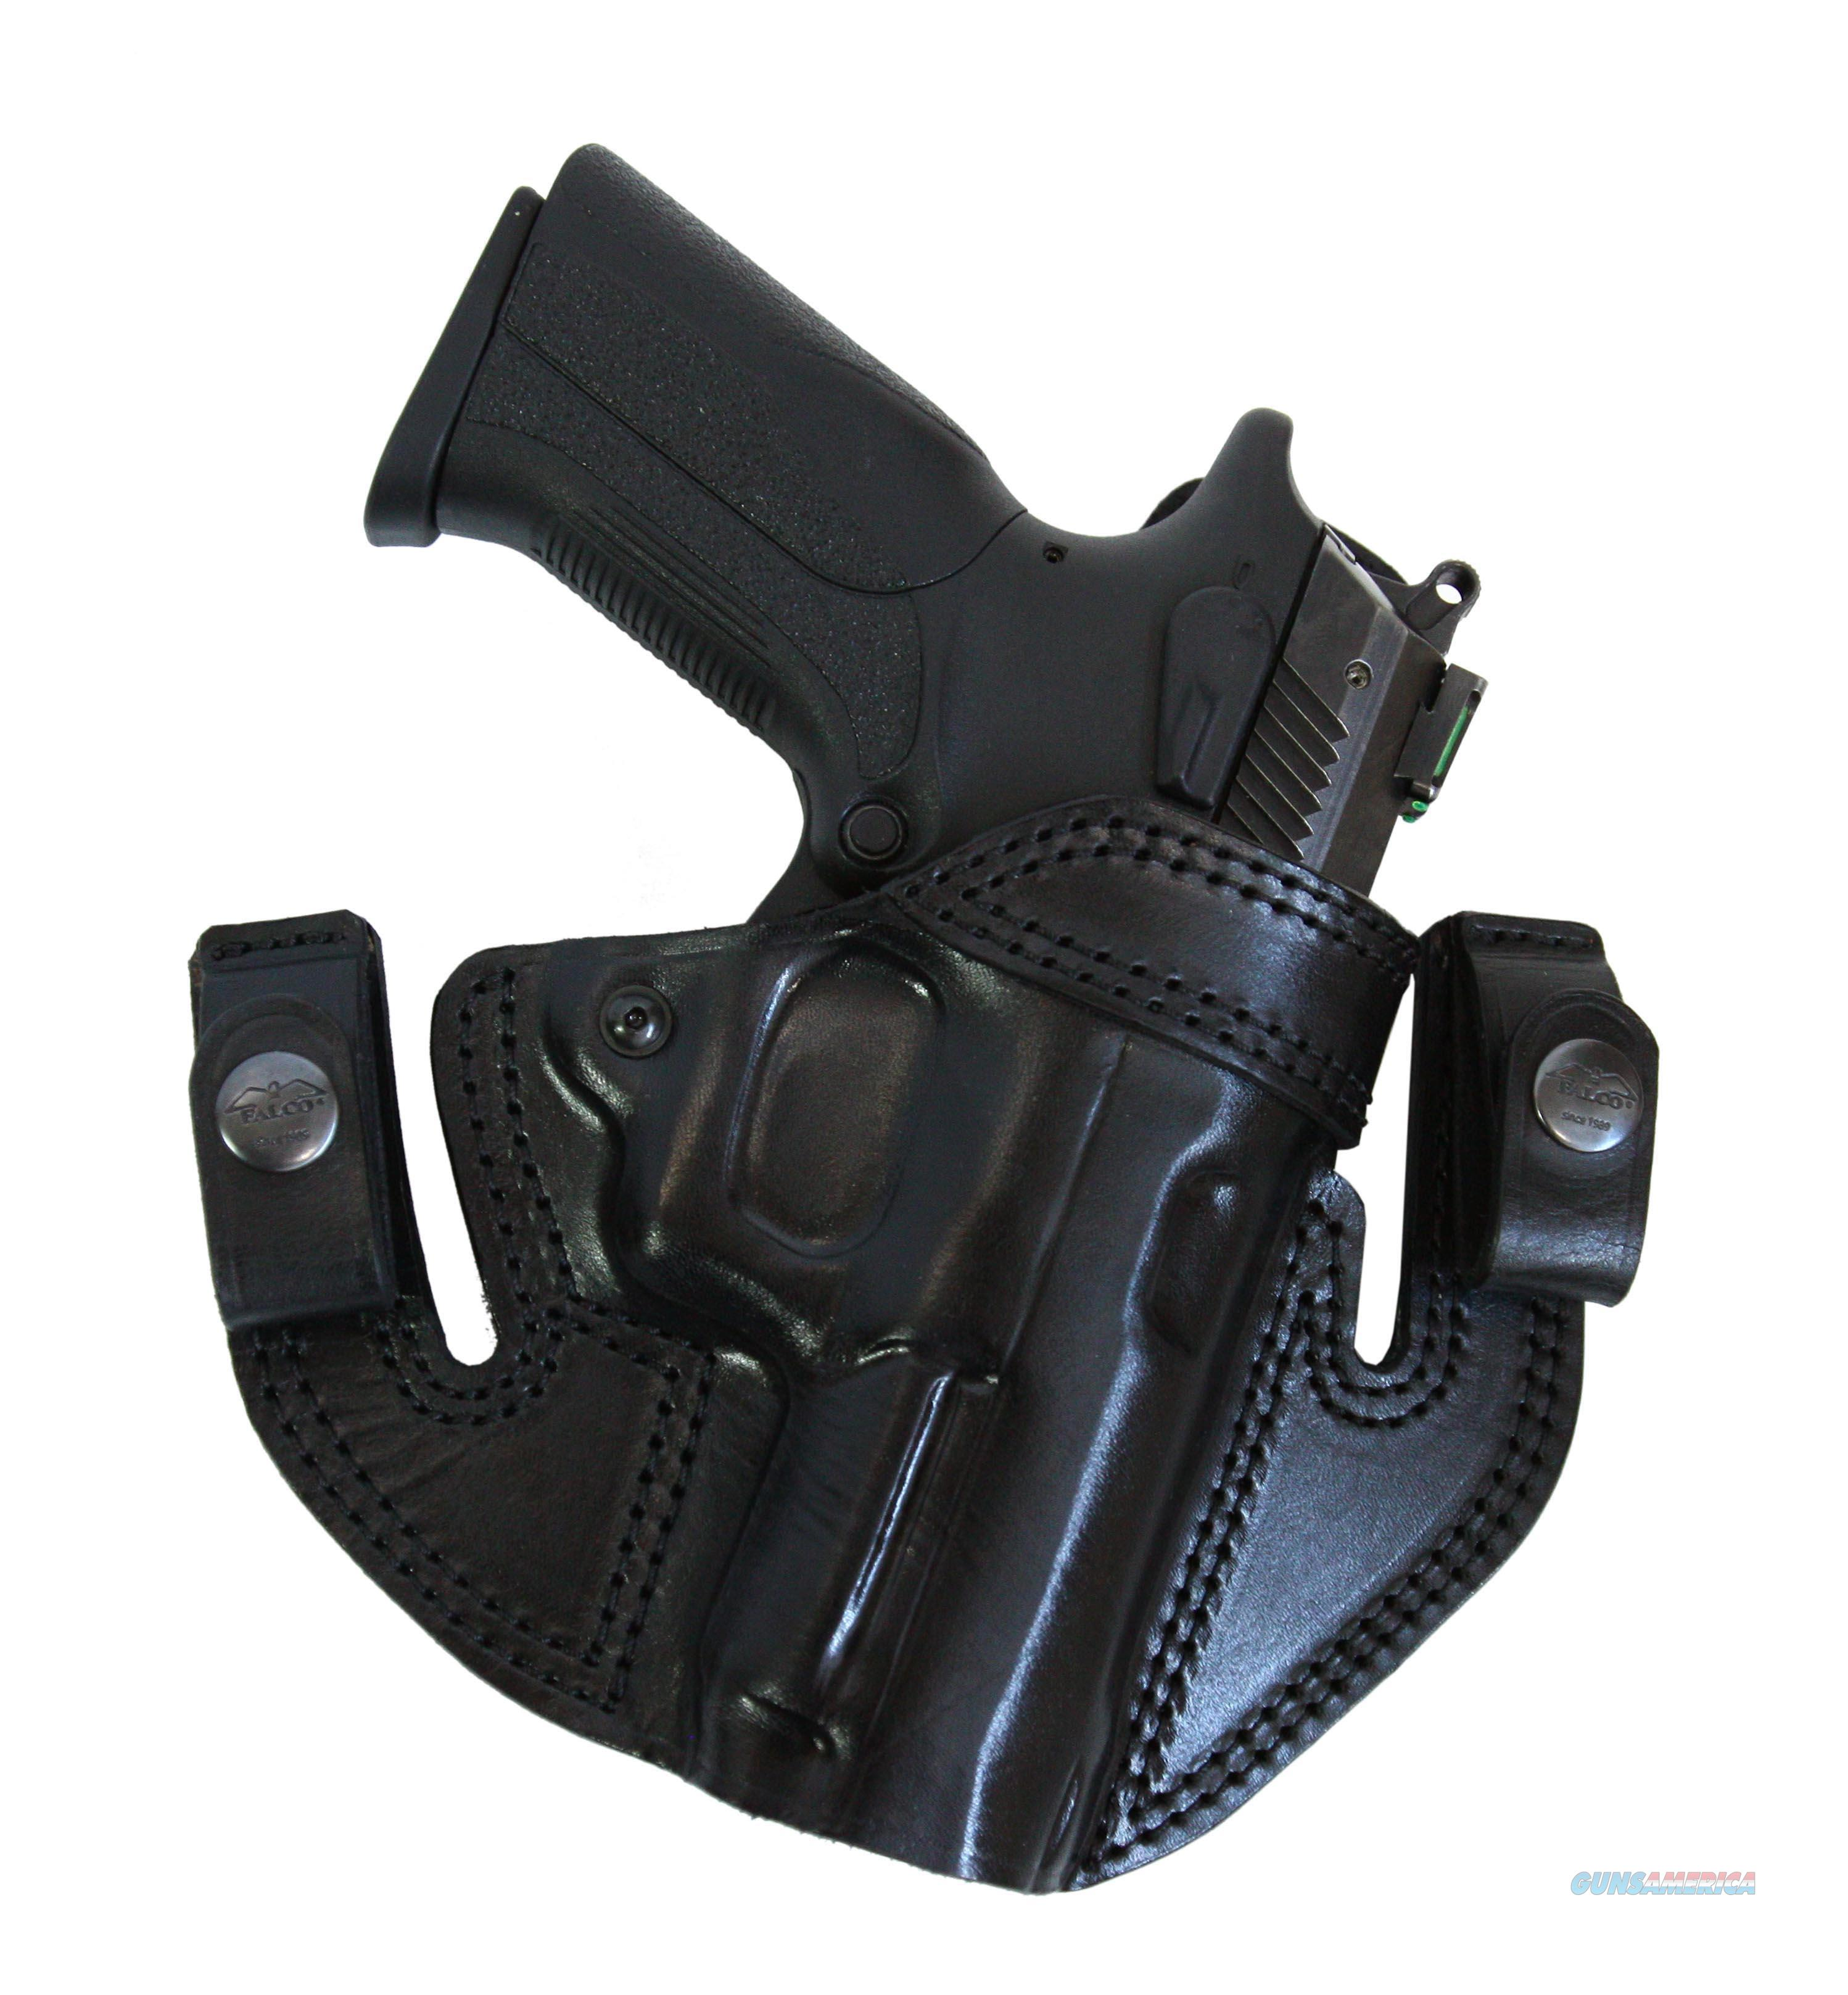 IWB / OWB Leather Gun Holster  Beretta PX4 Storm  Non-Guns > Holsters and Gunleather > Concealed Carry